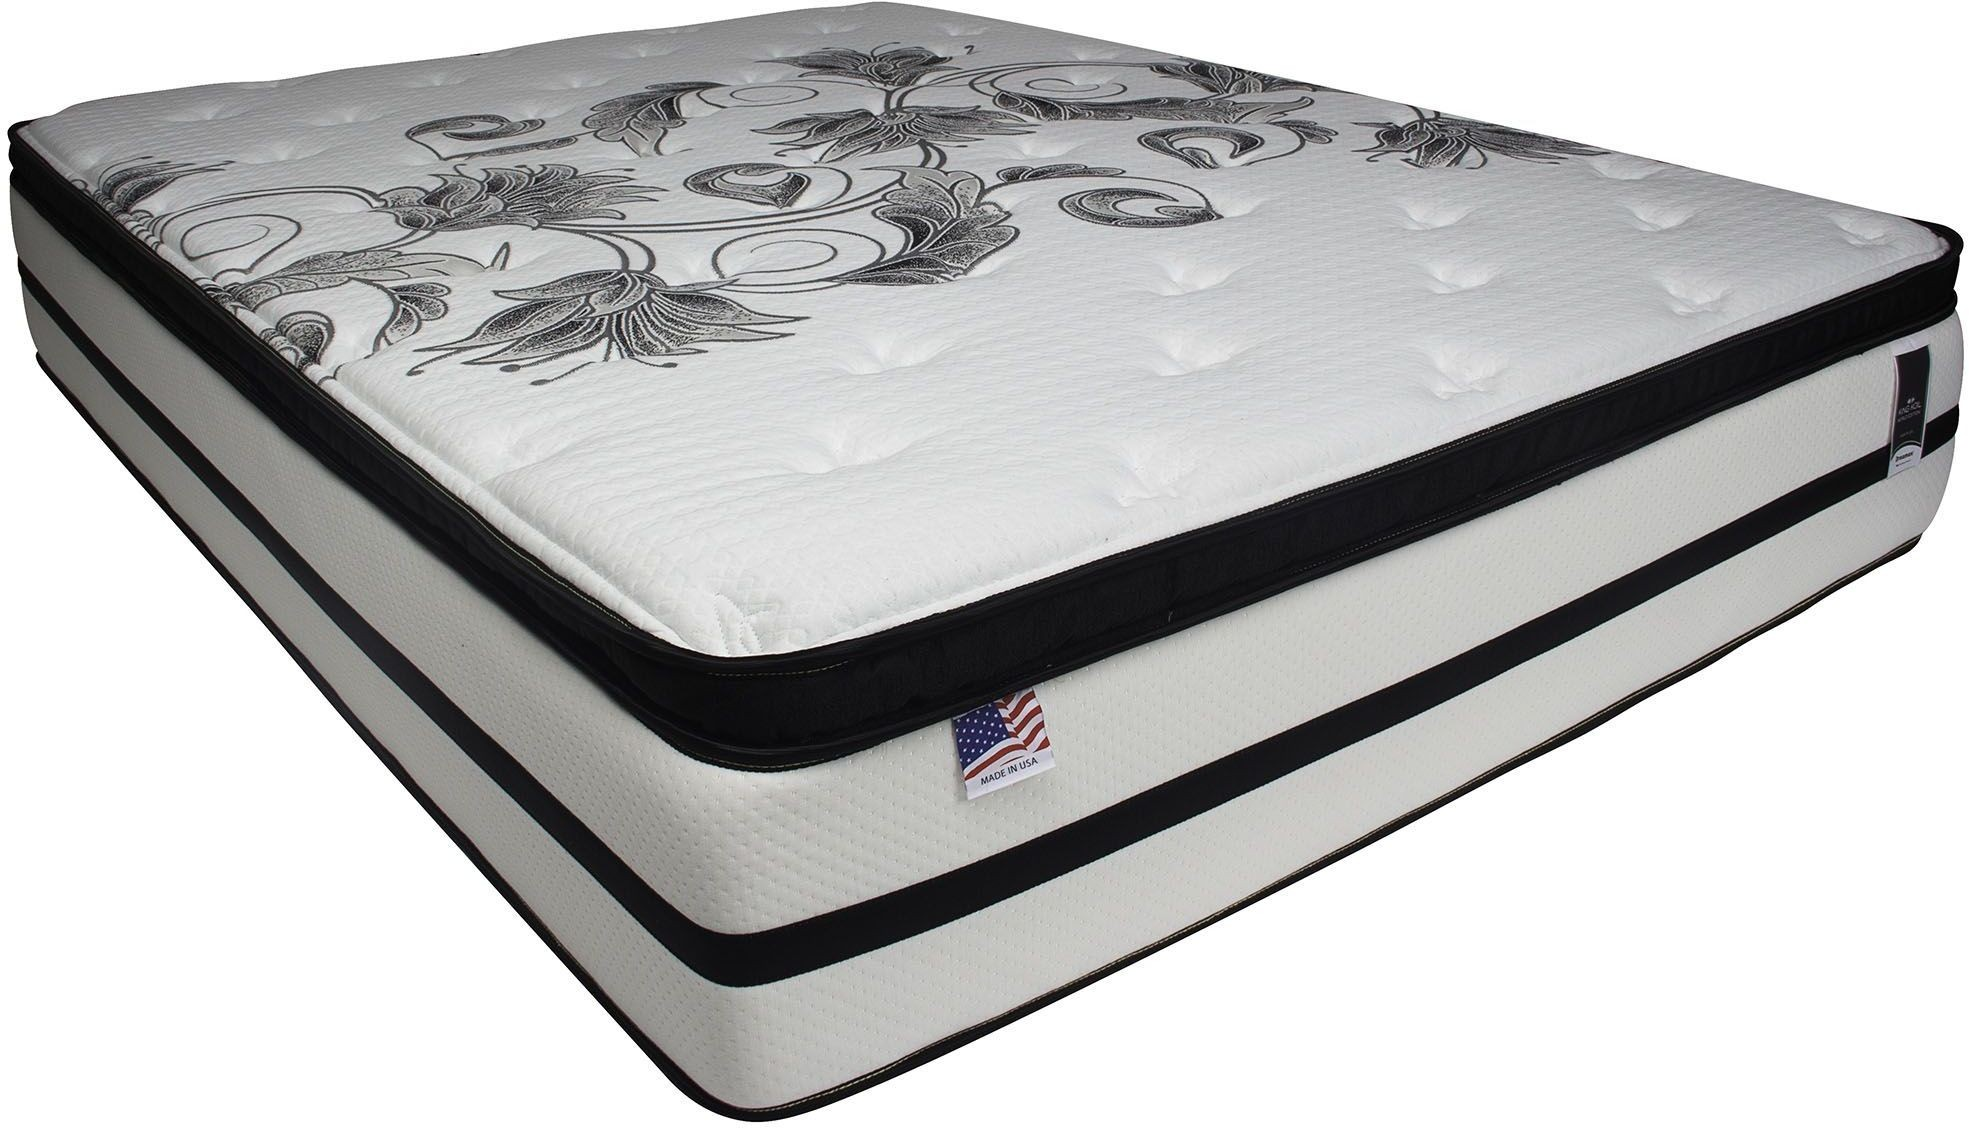 Brylee 14 Euro Pillow Top King Mattress From Furniture Of America Coleman Furniture